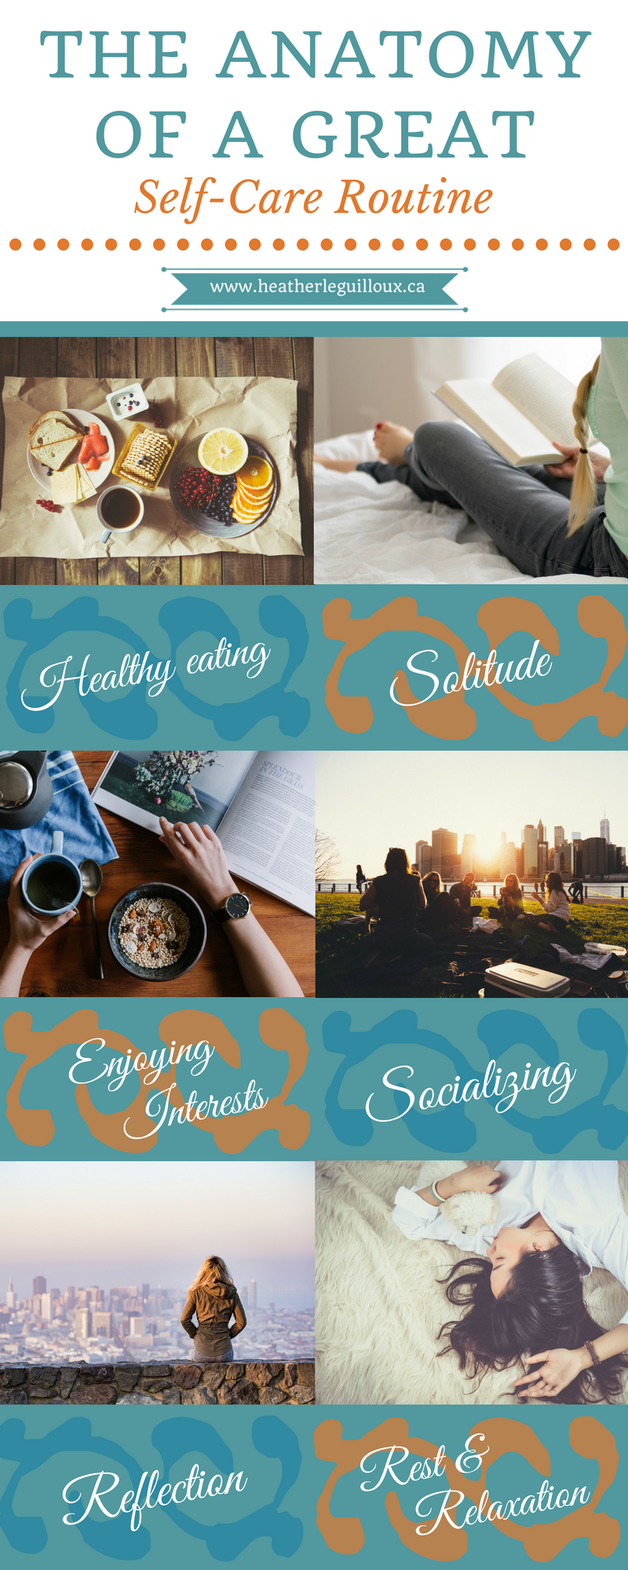 Blog article @hleguilloux focusing on six fundamental areas of a self-care routine including #healthyeating #solitude #interests #socializing #reflection #rest & #relaxation - includes links & resources to help build your own great self-care routine!